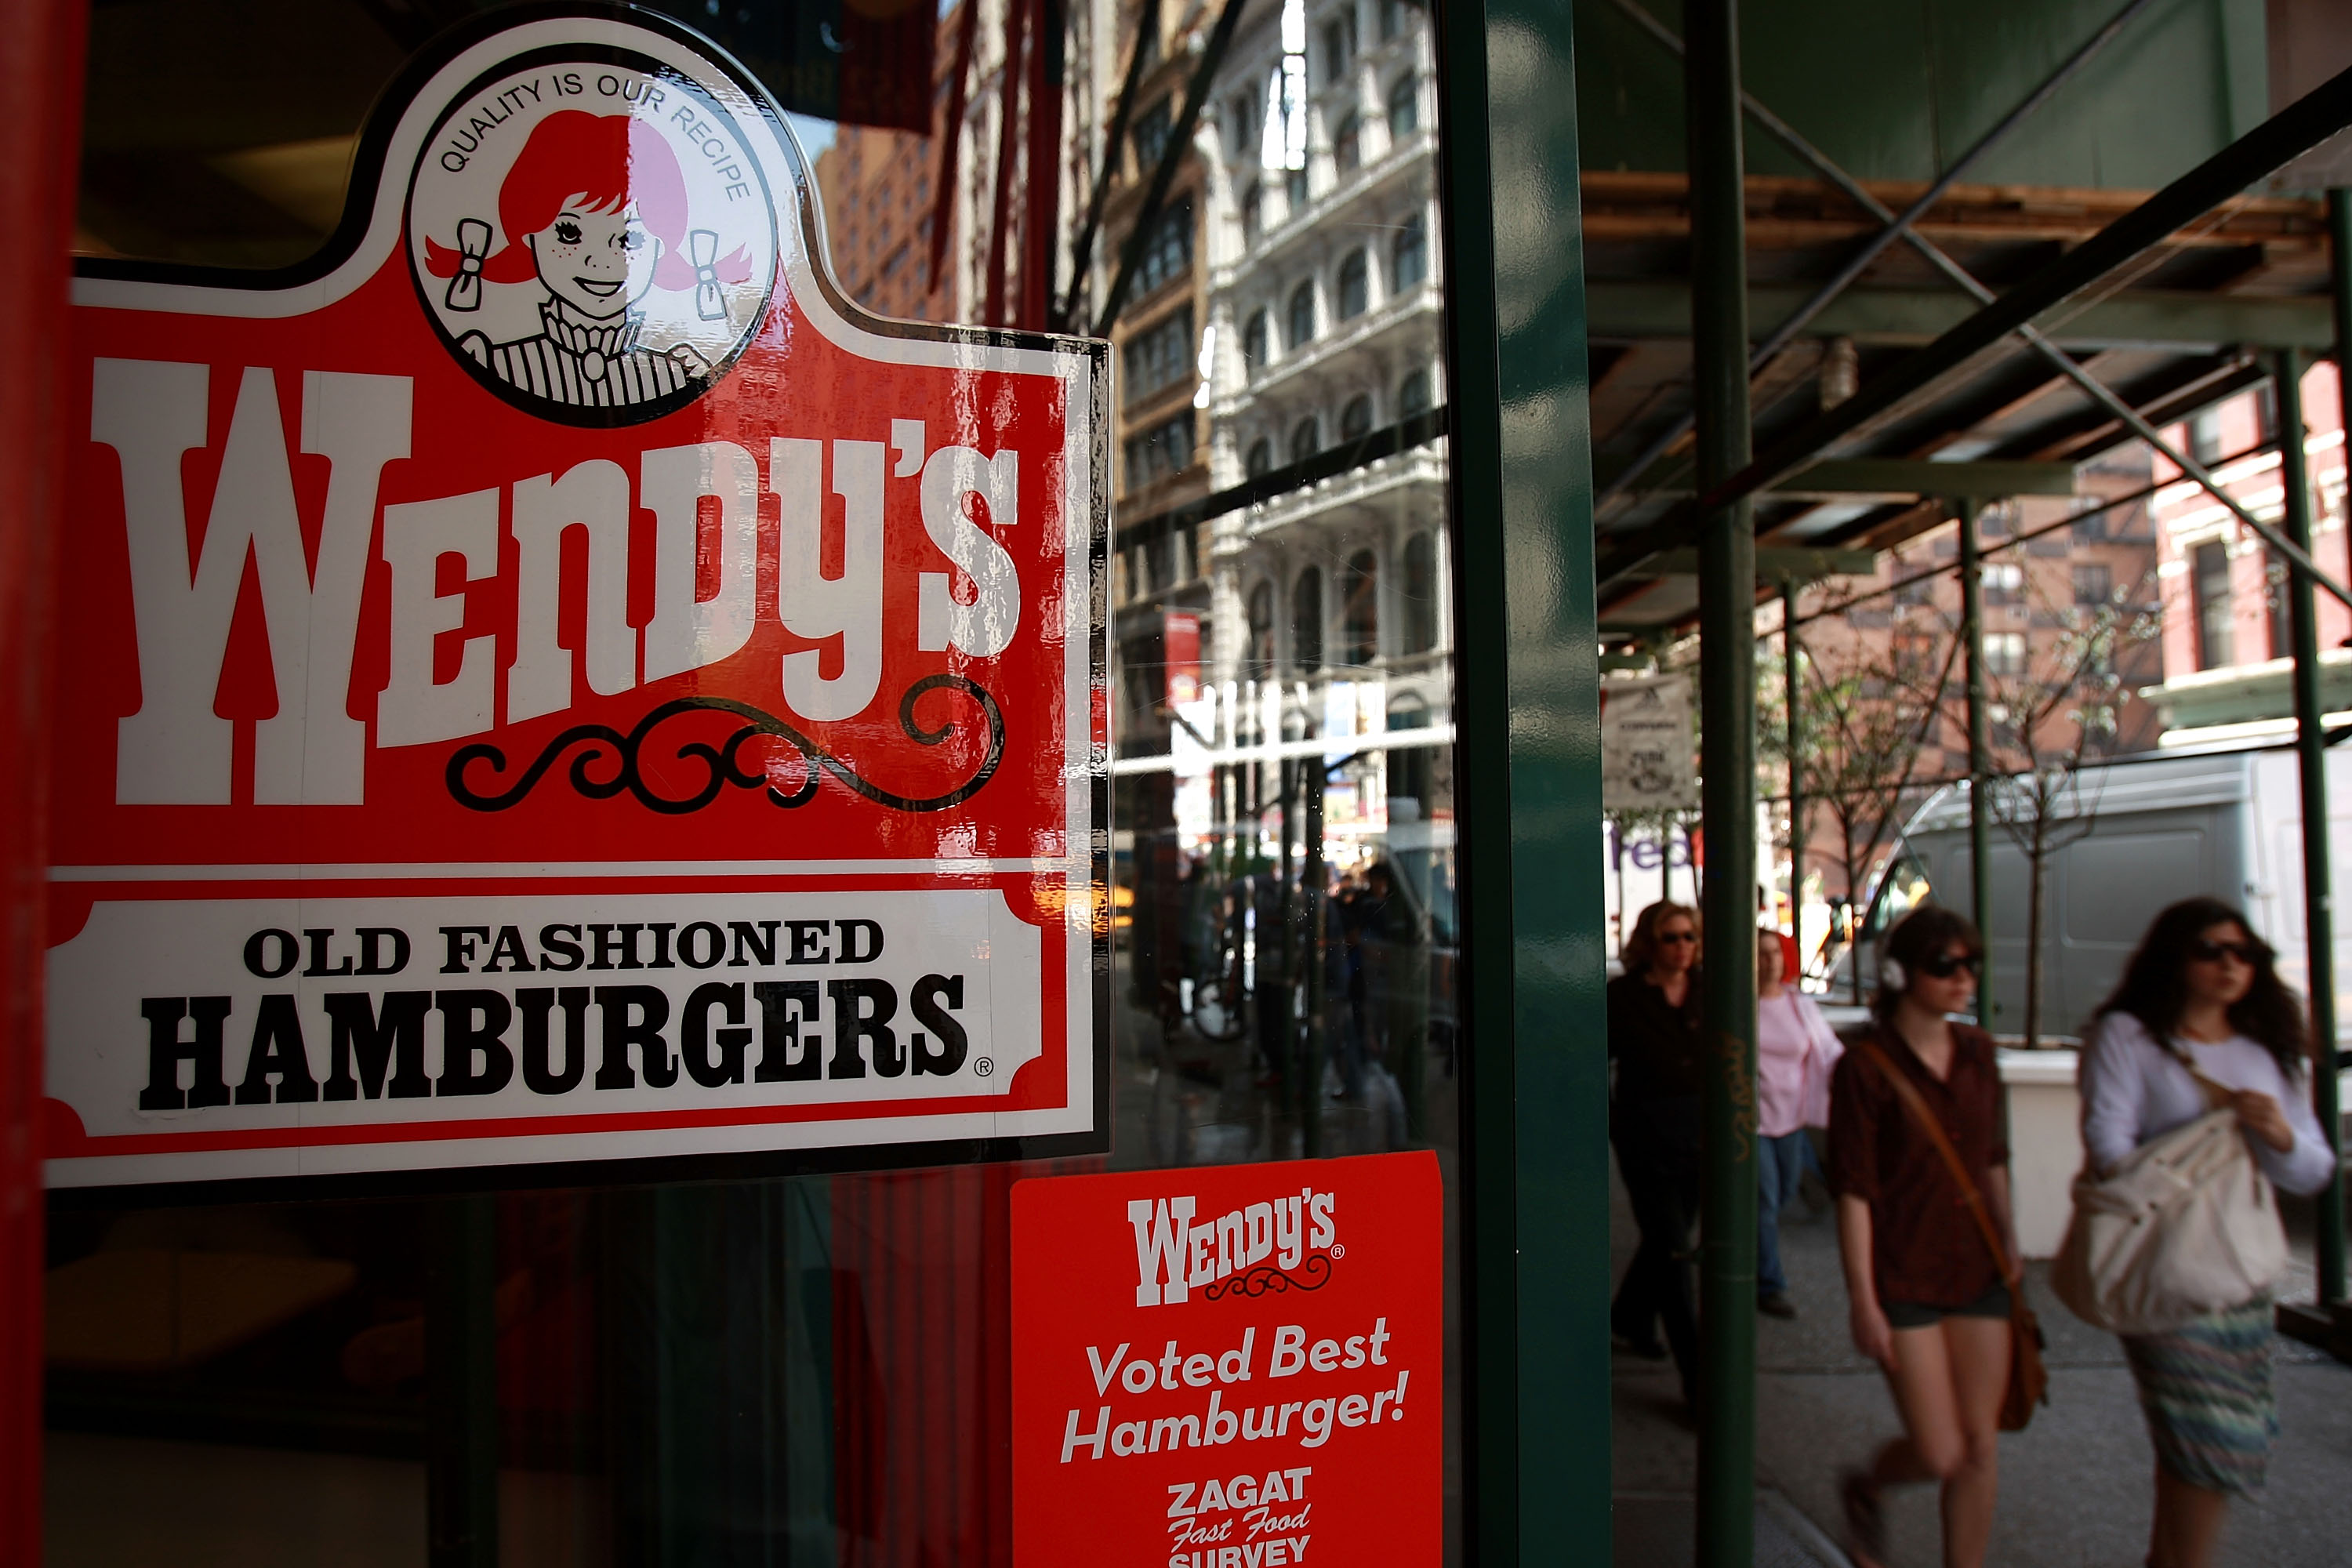 NEW YORK - APRIL 24: Pedestrians walk by a Wendy's hamburger chain April 24, 2008 in New York City. (Photo by Spencer Platt/Getty Images)